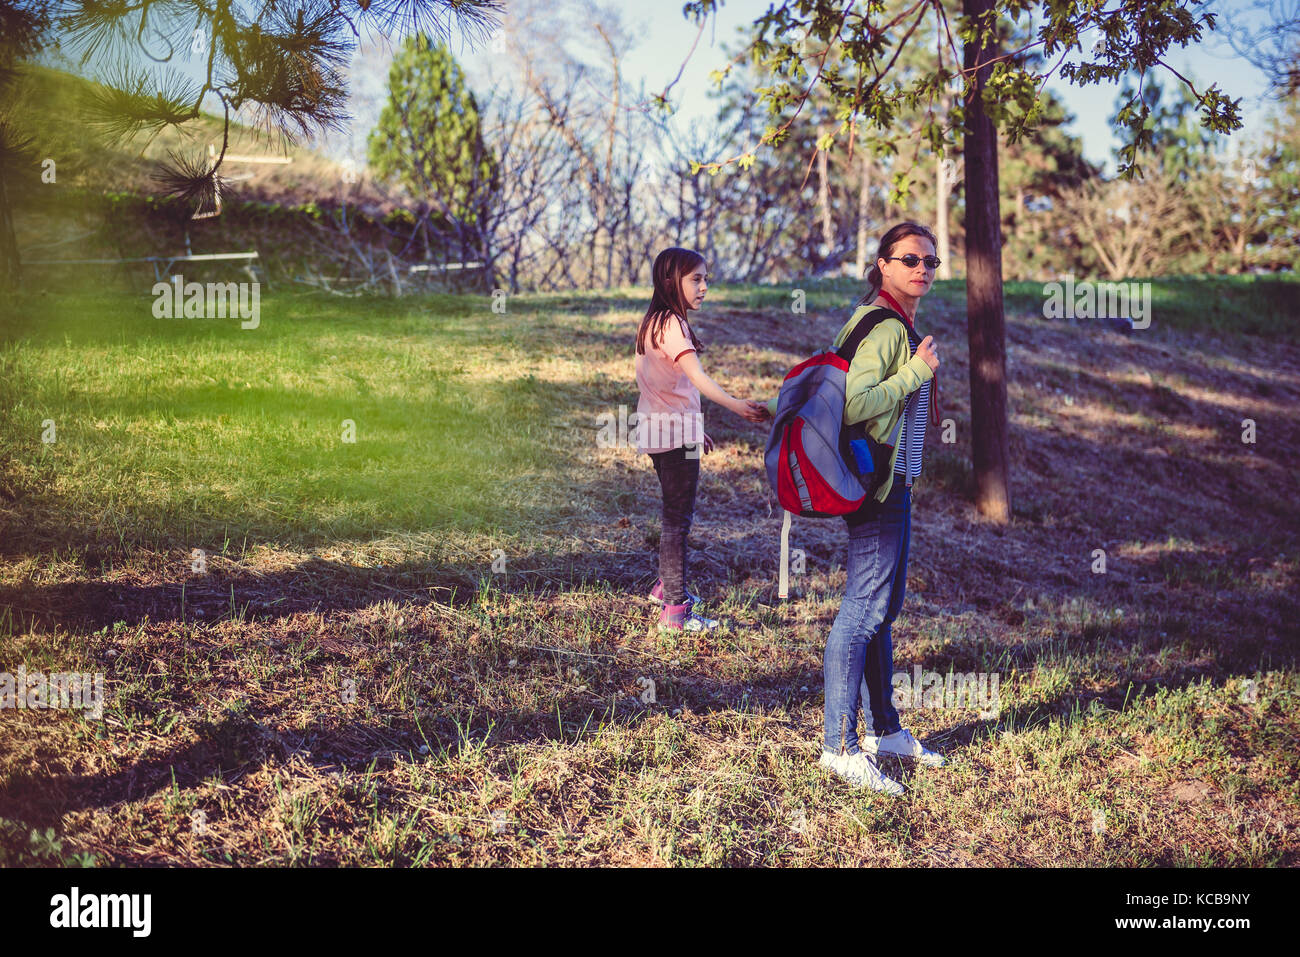 Mother wearing backpack and daughter hiking outdoors - Stock Image